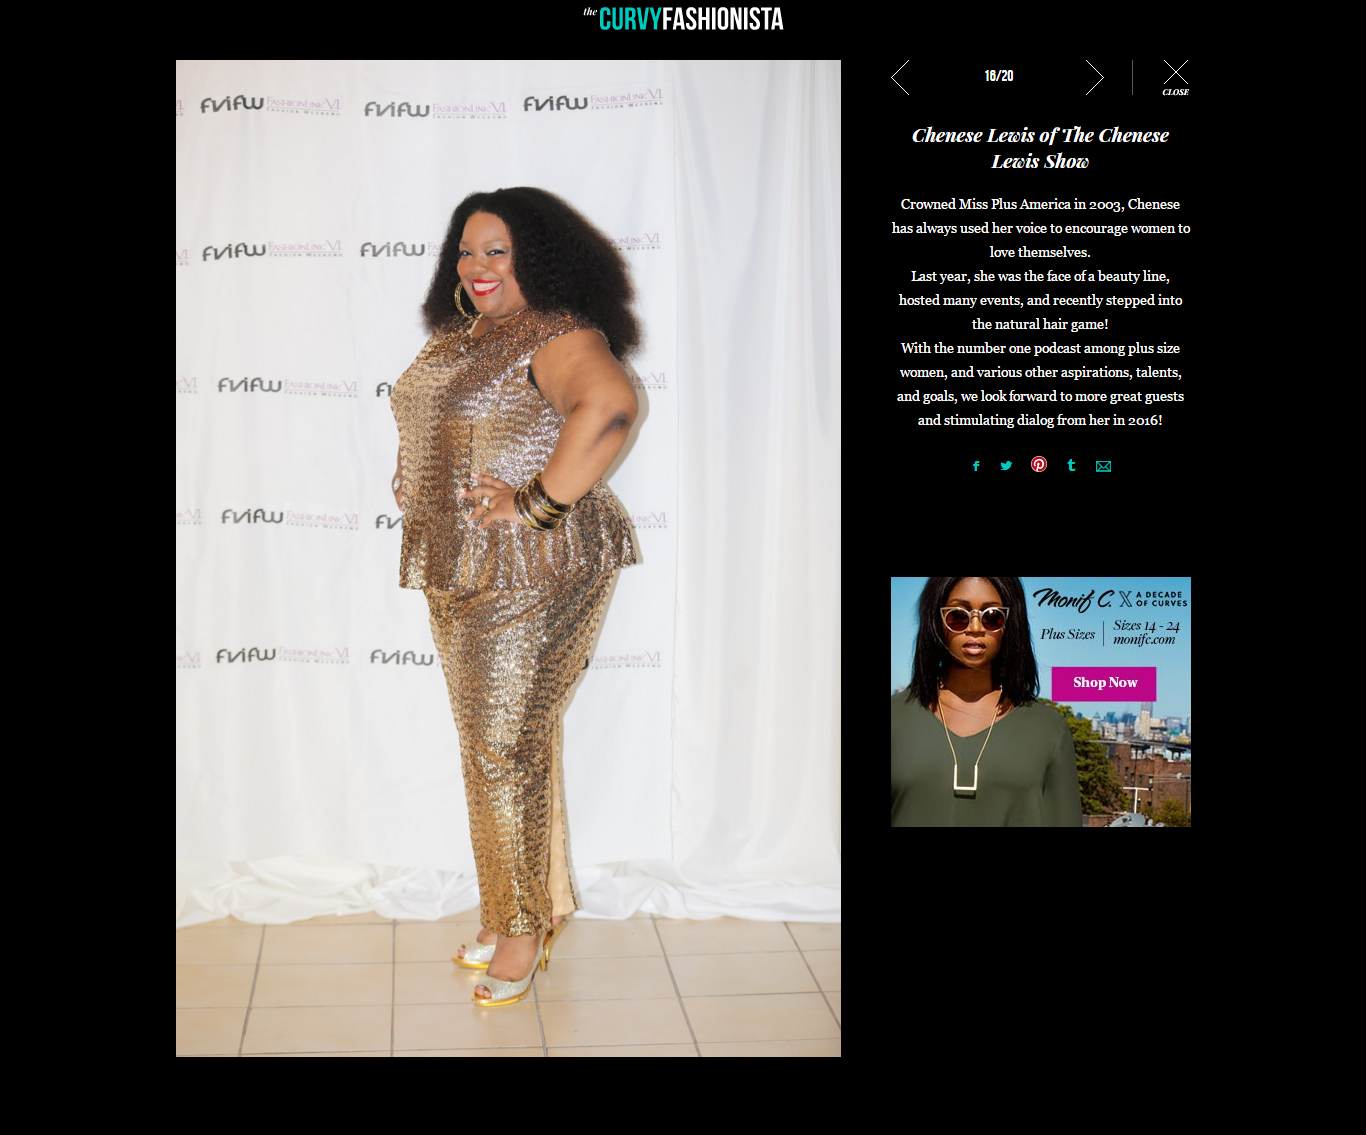 screencapture-thecurvyfashionista-com-2016-01-the-19-plus-size-women-in-the-plus-size-community-to-watch-in-2016-img_1365-1452718209019